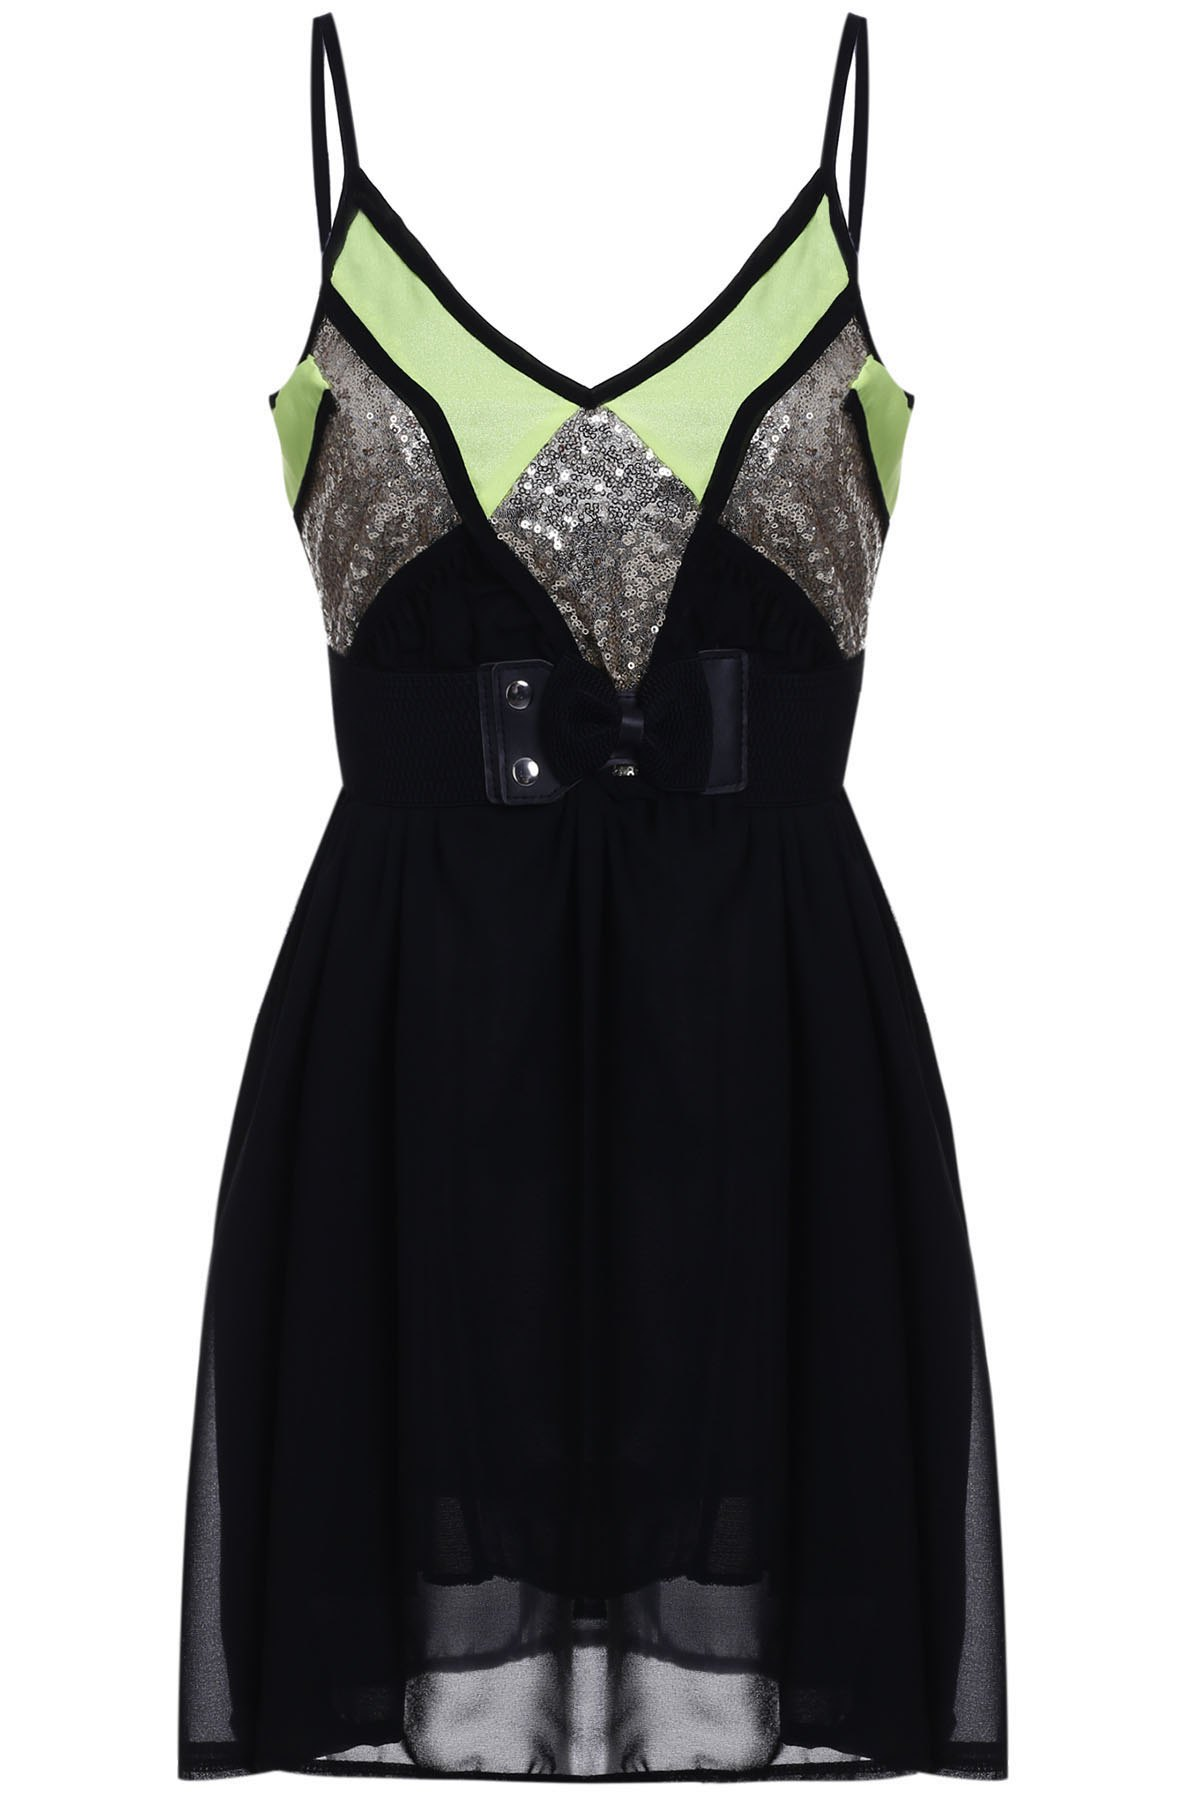 Sexy Style Spaghetti Strap Sleeveless Sequins Embellished Loose Women's Dress - BLACK M